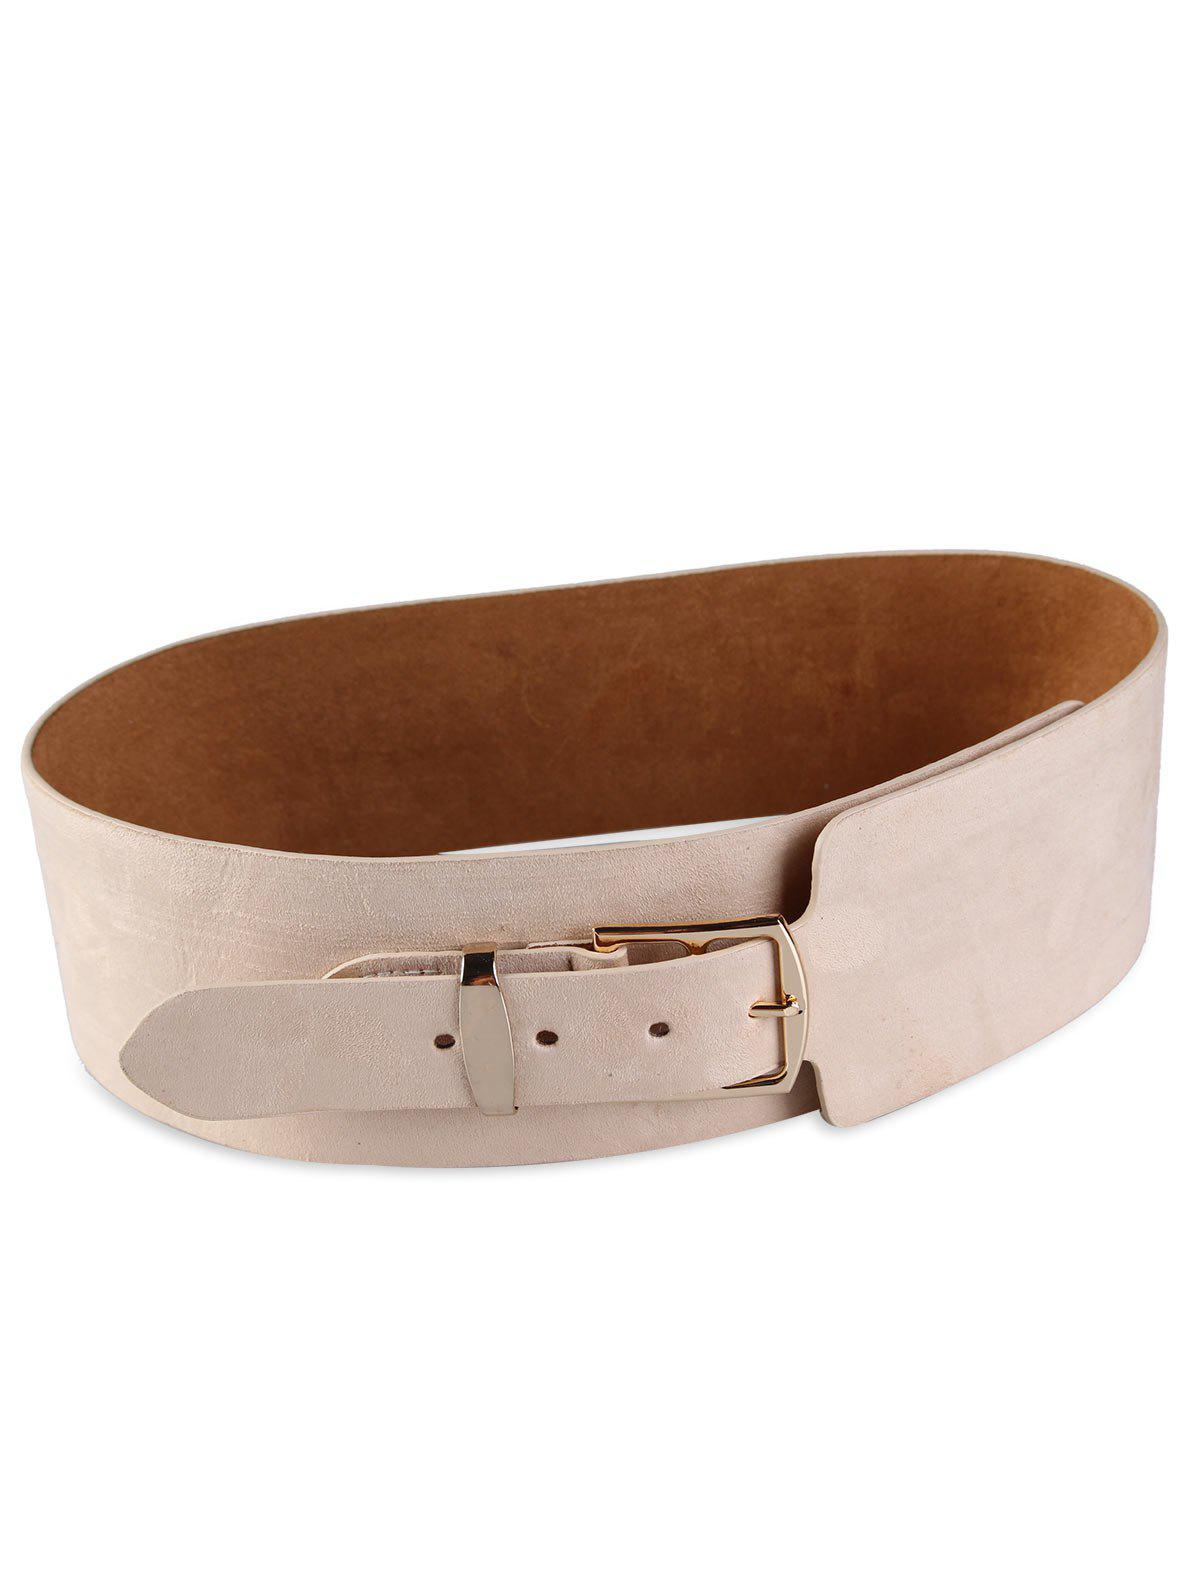 Vintage Metal Buckle Decorated Wide Waist Belt - BEIGE